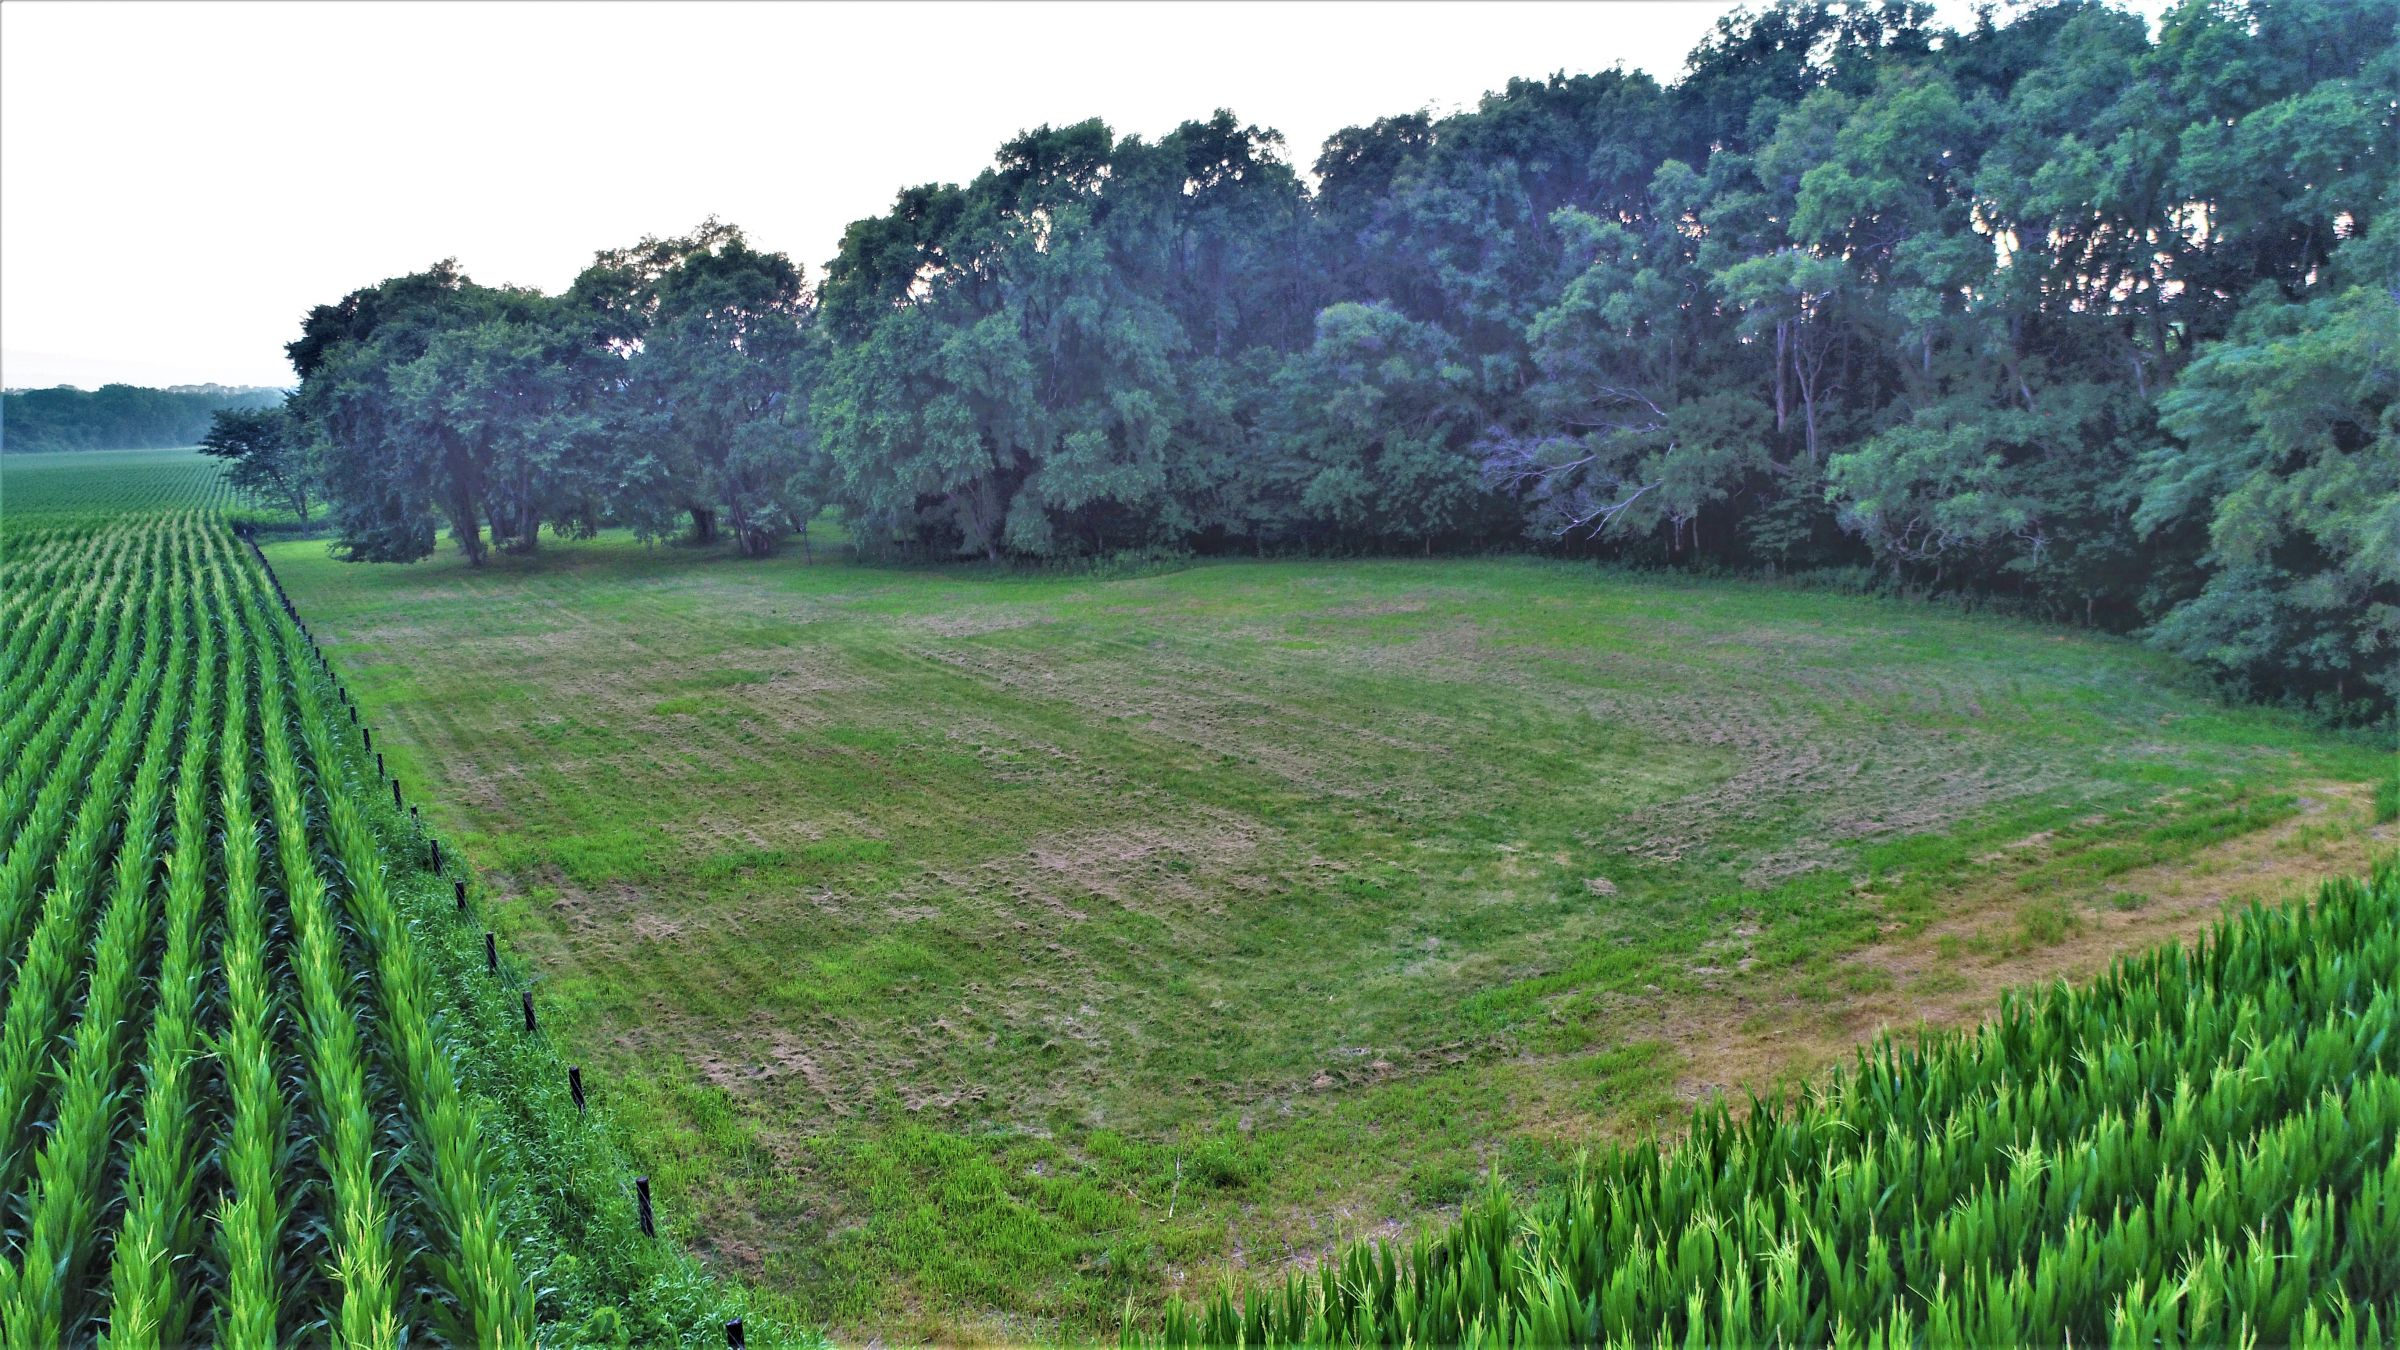 land-dallas-county-iowa-4-acres-listing-number-15072-11-2020-07-17-172634.JPG